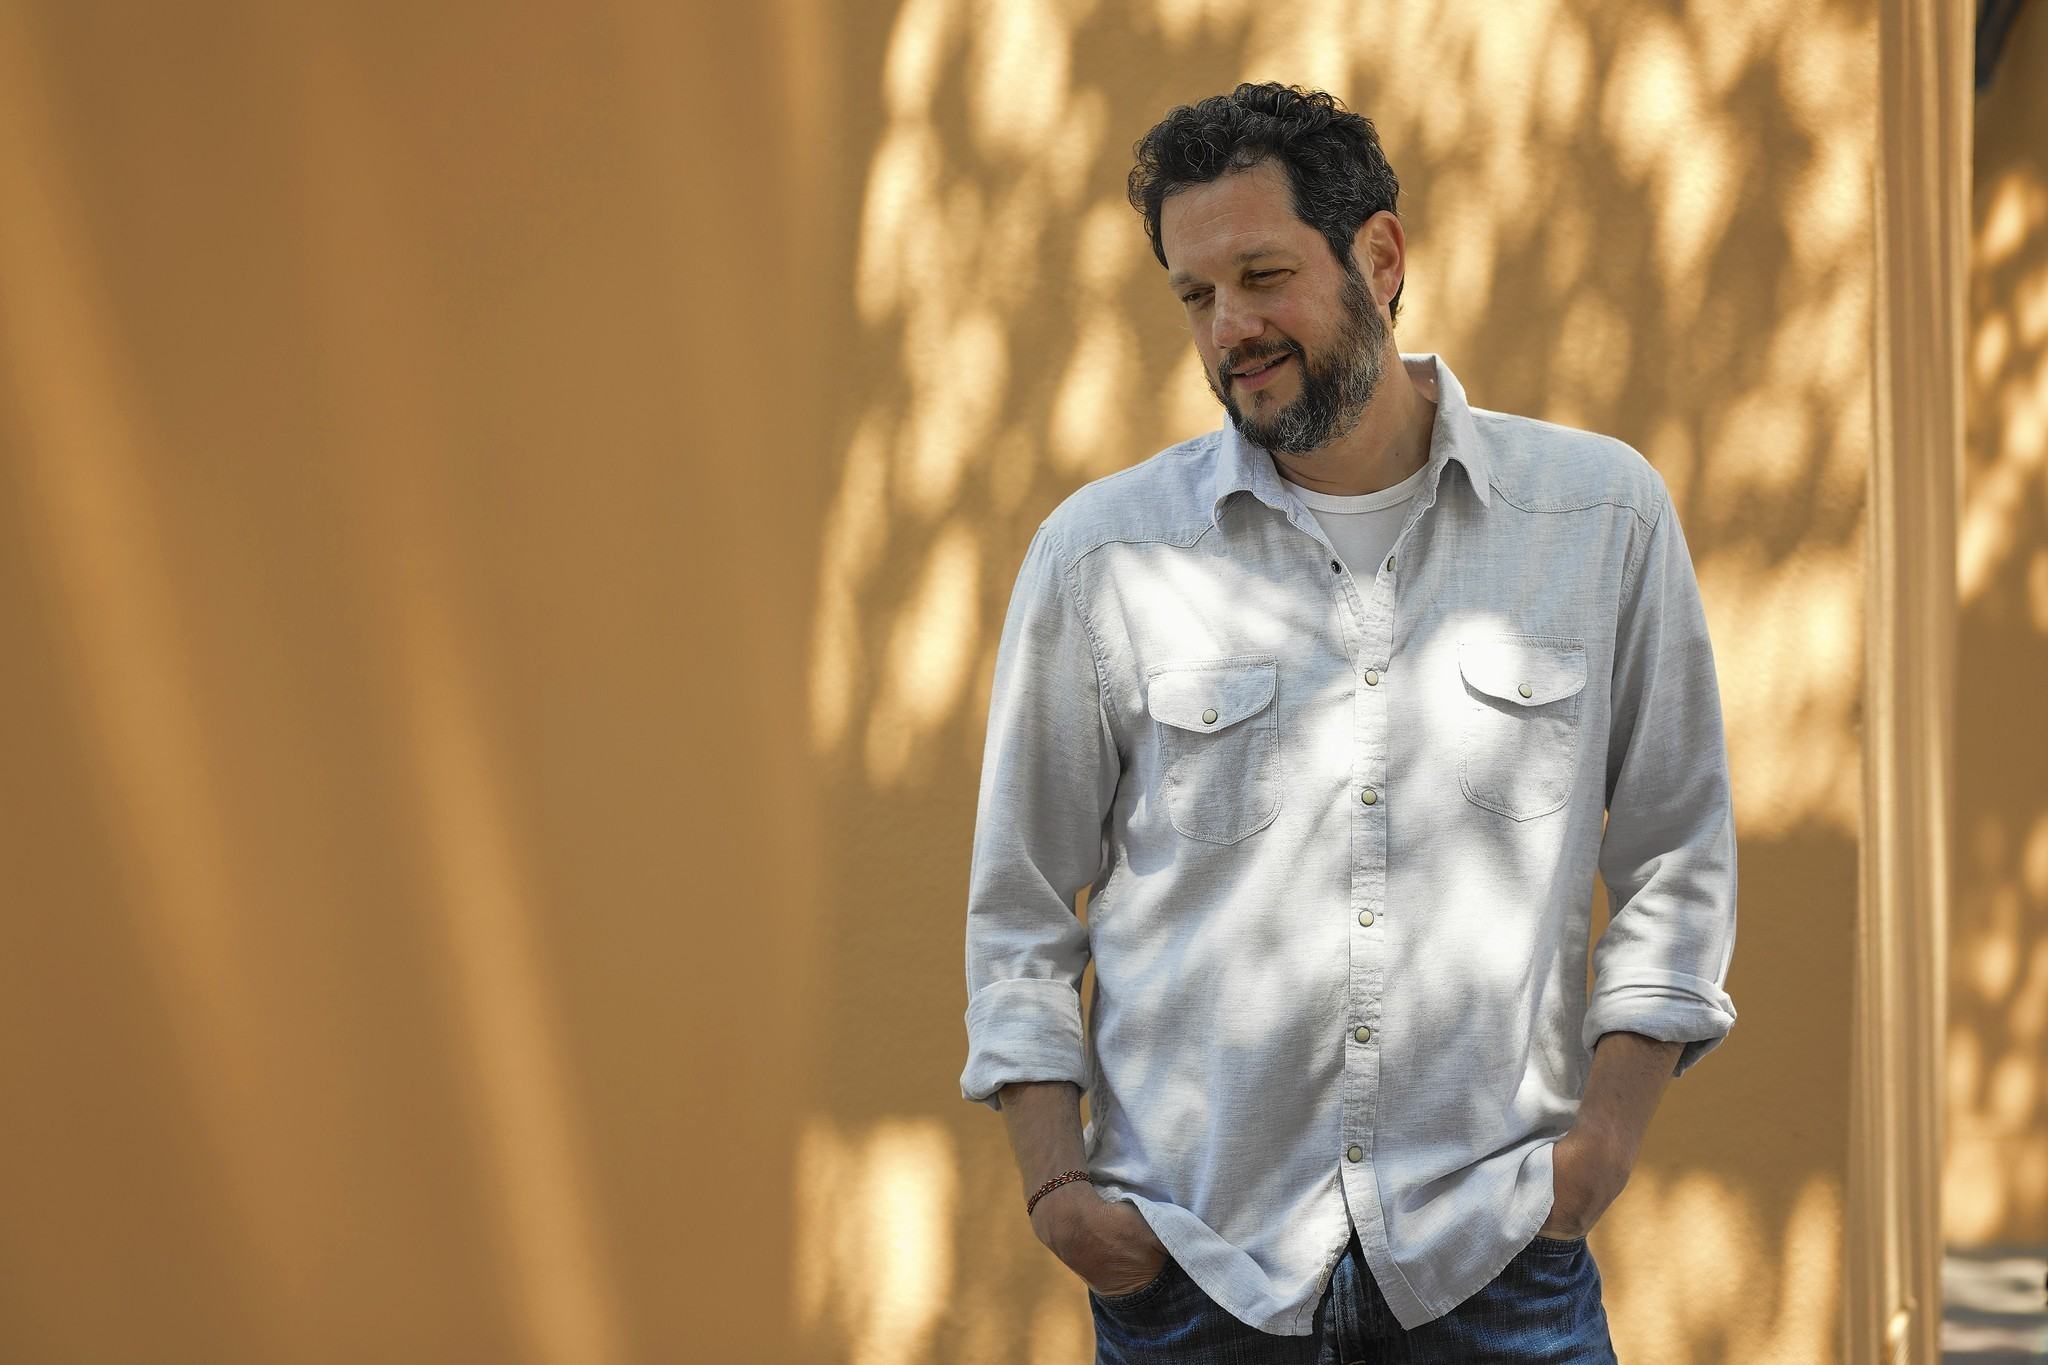 Retour sur Michael Giacchino, le compositeur officiel de Rogue One, et bien plus encore !